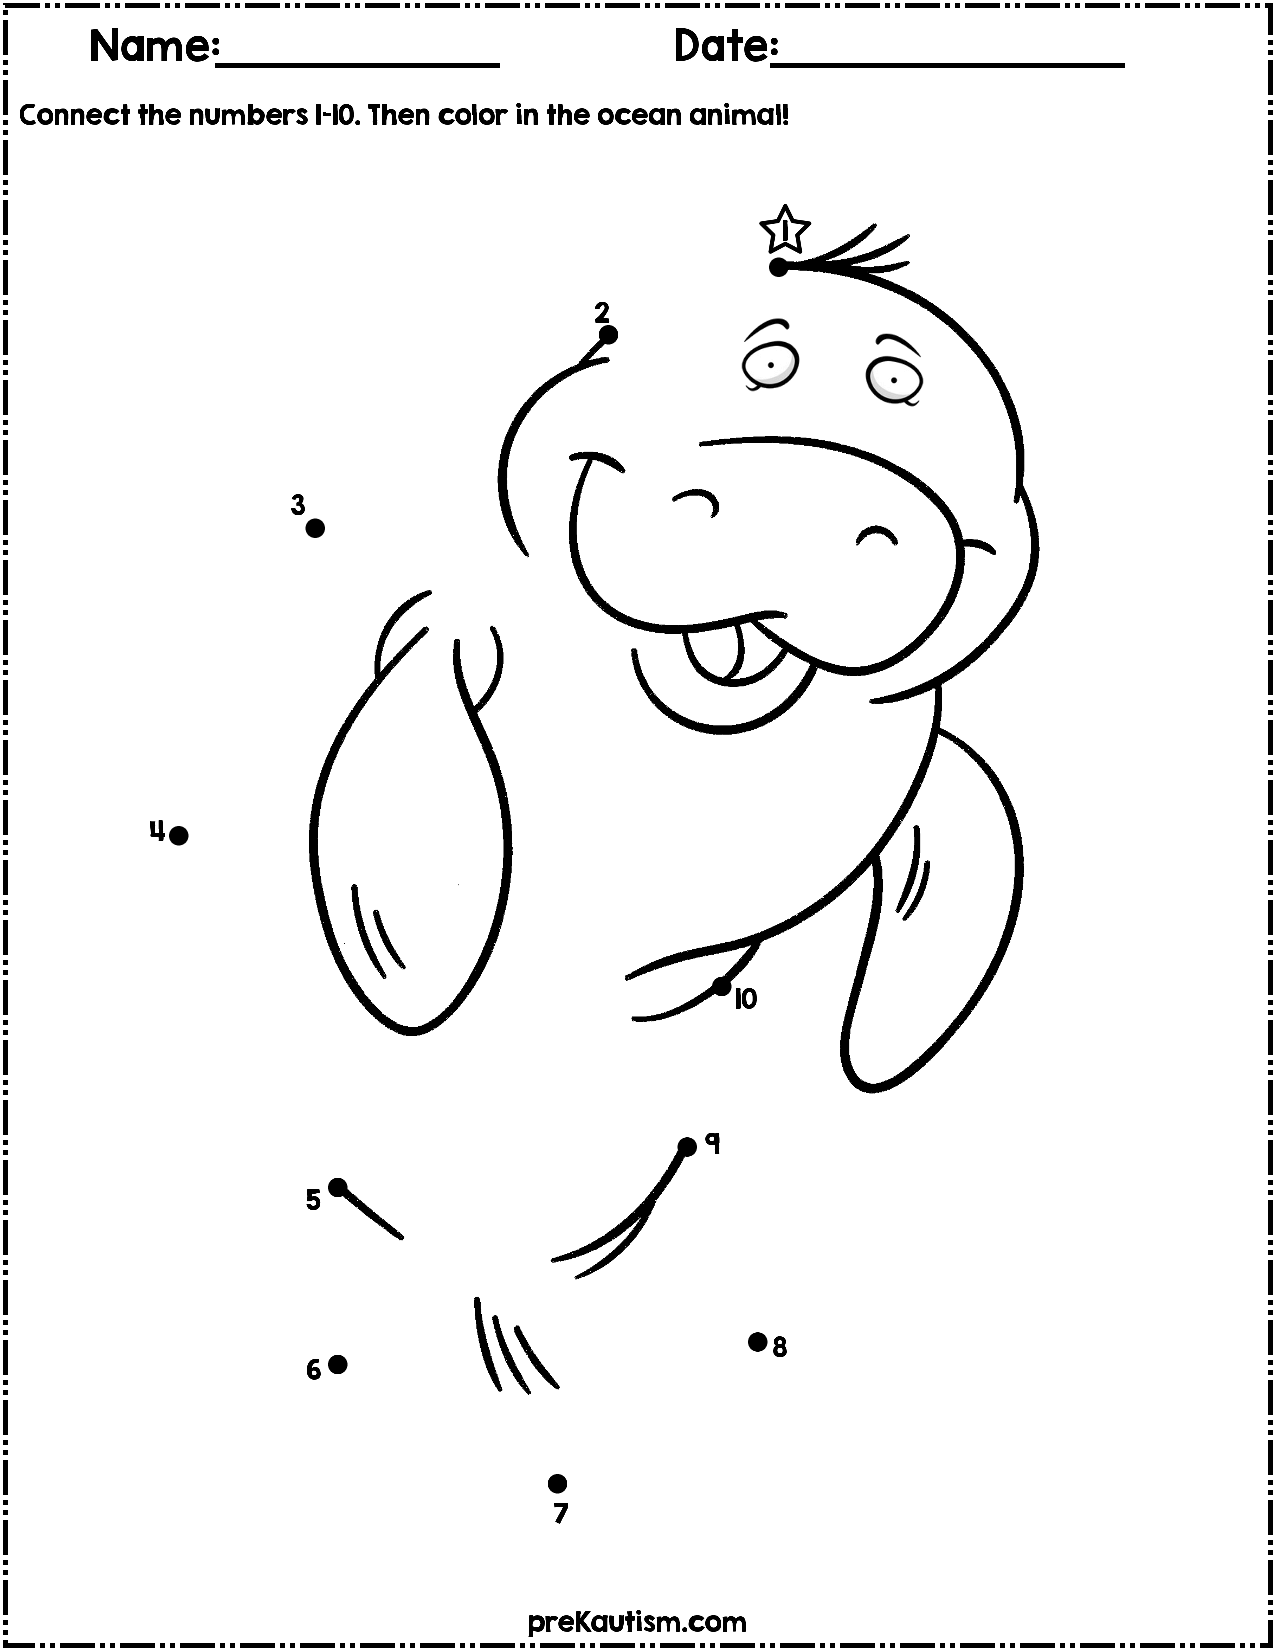 Ocean Animals Dot To Dot Worksheets Numbers 1 10 Dot Worksheets Ocean Animals Autism Activities [ 1650 x 1275 Pixel ]